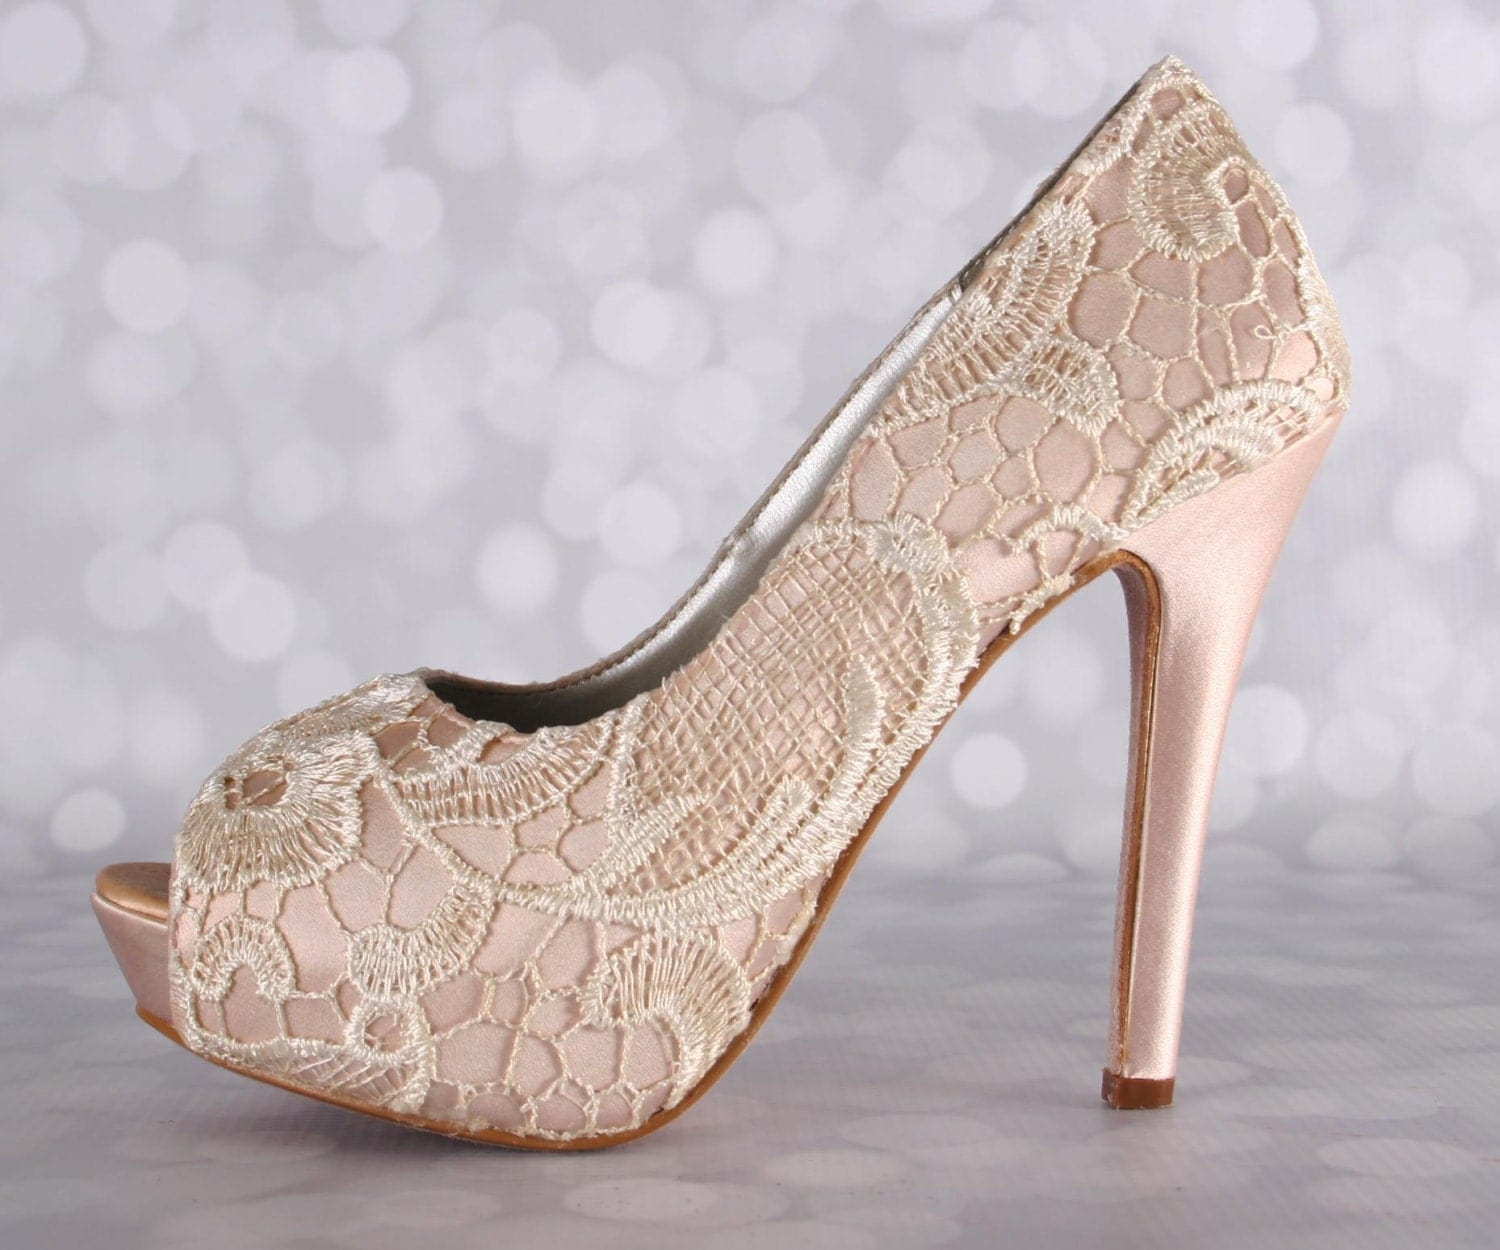 Bridal Shoes High Heels: Wedding Shoes Blush Wedding Shoes Lace Bridal Heels High